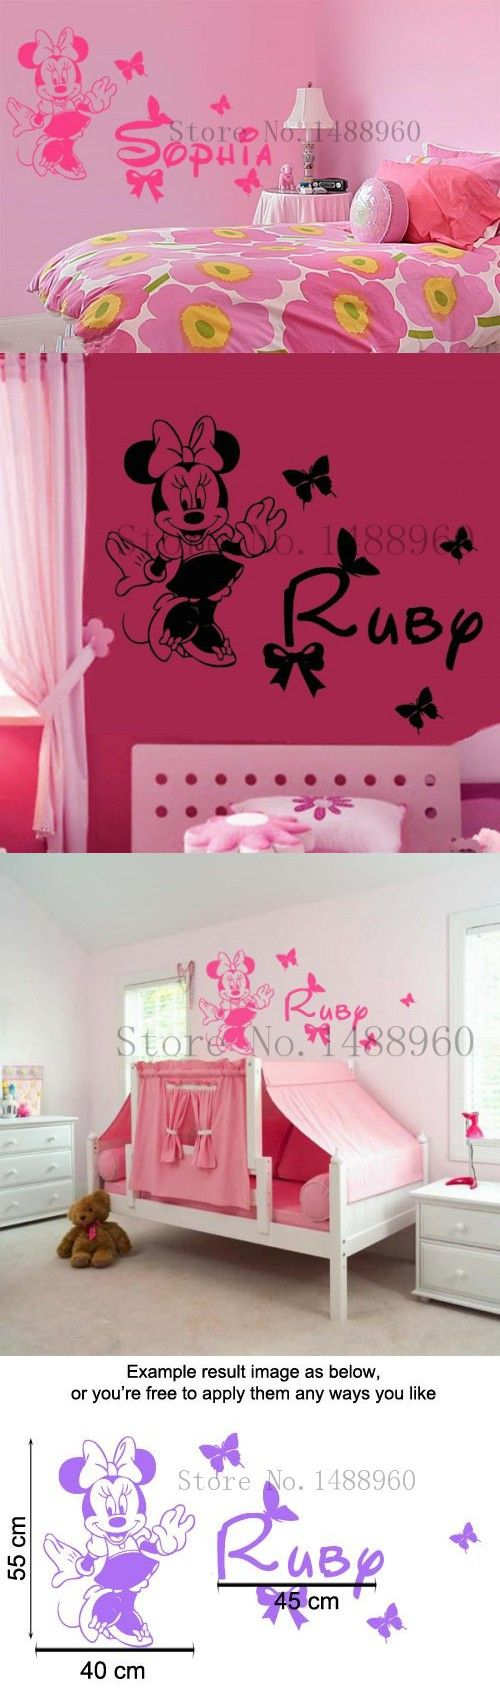 Best 25 name wall stickers ideas on pinterest name wall decals personalise custom name wall stickers home decor diy poster decal mural decoration removable design inspired minnie girls amipublicfo Gallery